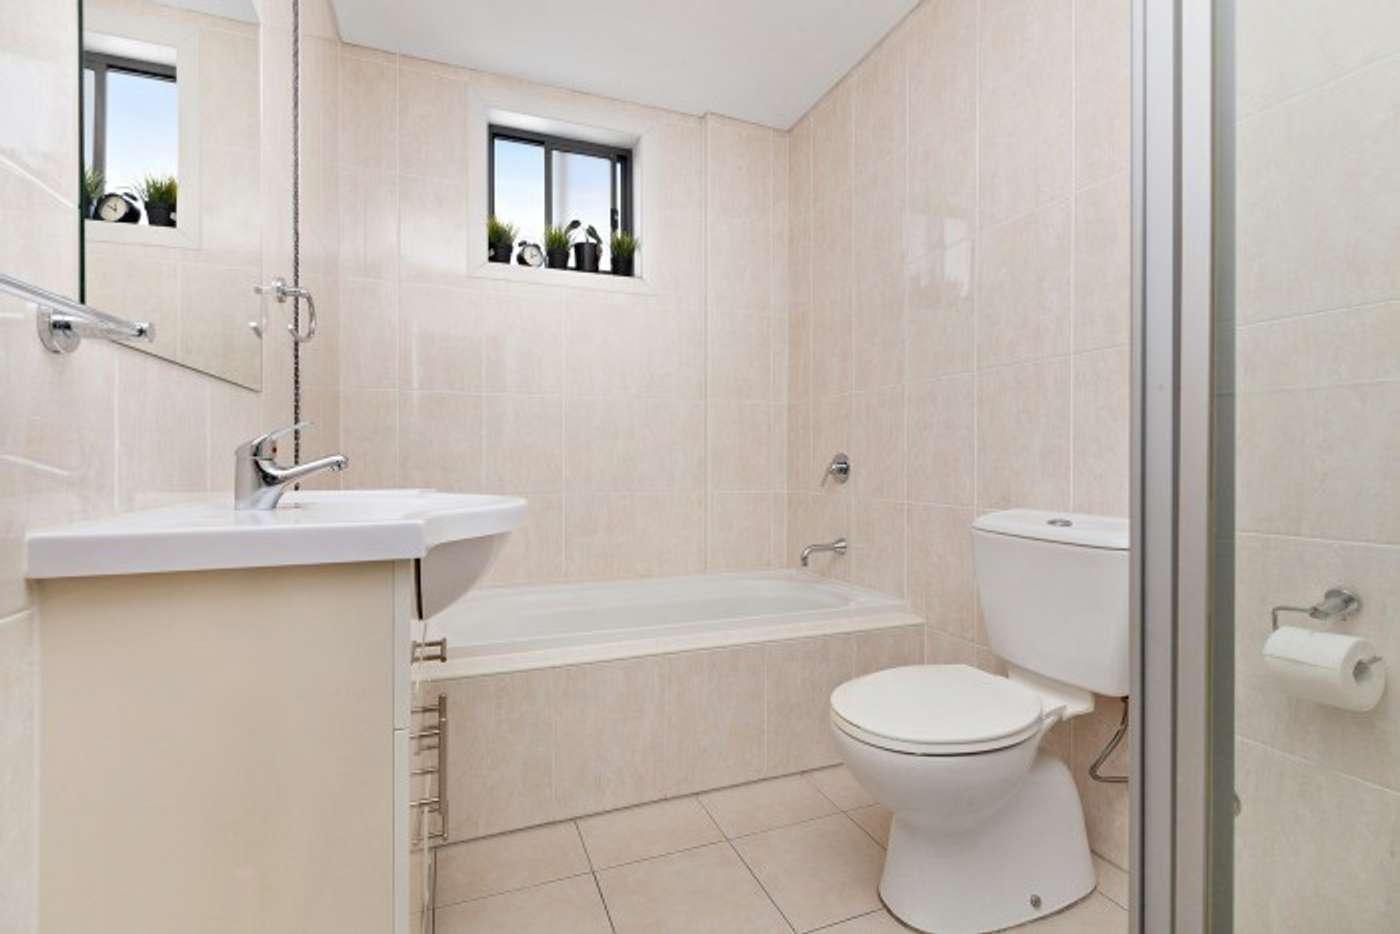 Sixth view of Homely unit listing, 22/6-12 The Avenue, Mount Druitt NSW 2770